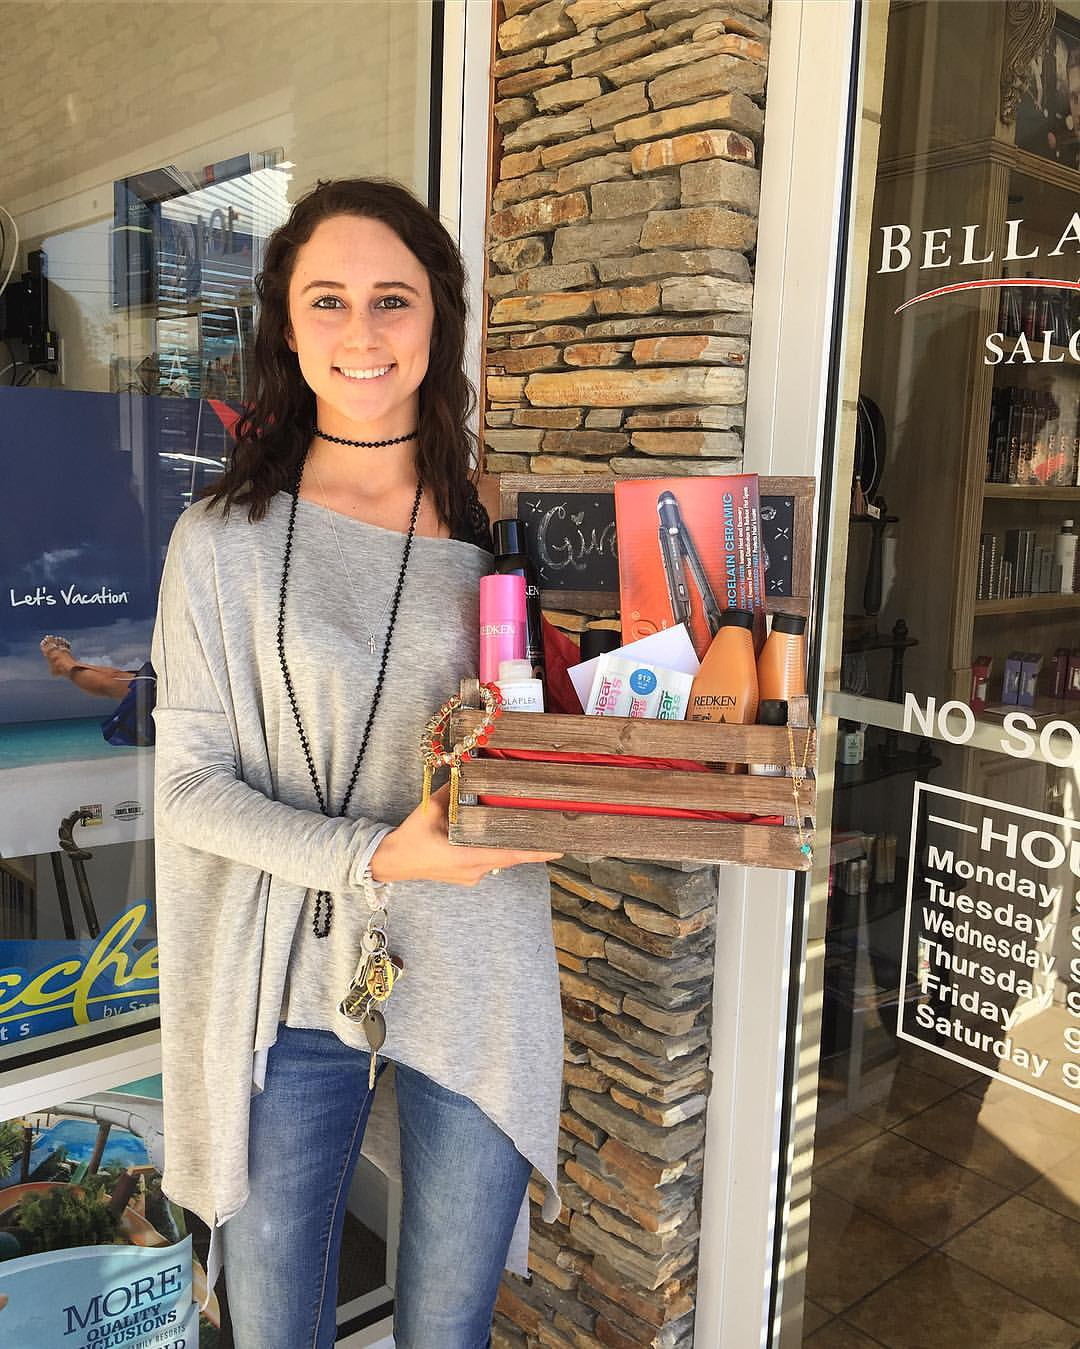 Congratulations to our winner,Miranda McNair, who already stopped by the salon to scoop up her amazing basket full of goodies! Stay tuned for more contests and giveaways in the future!